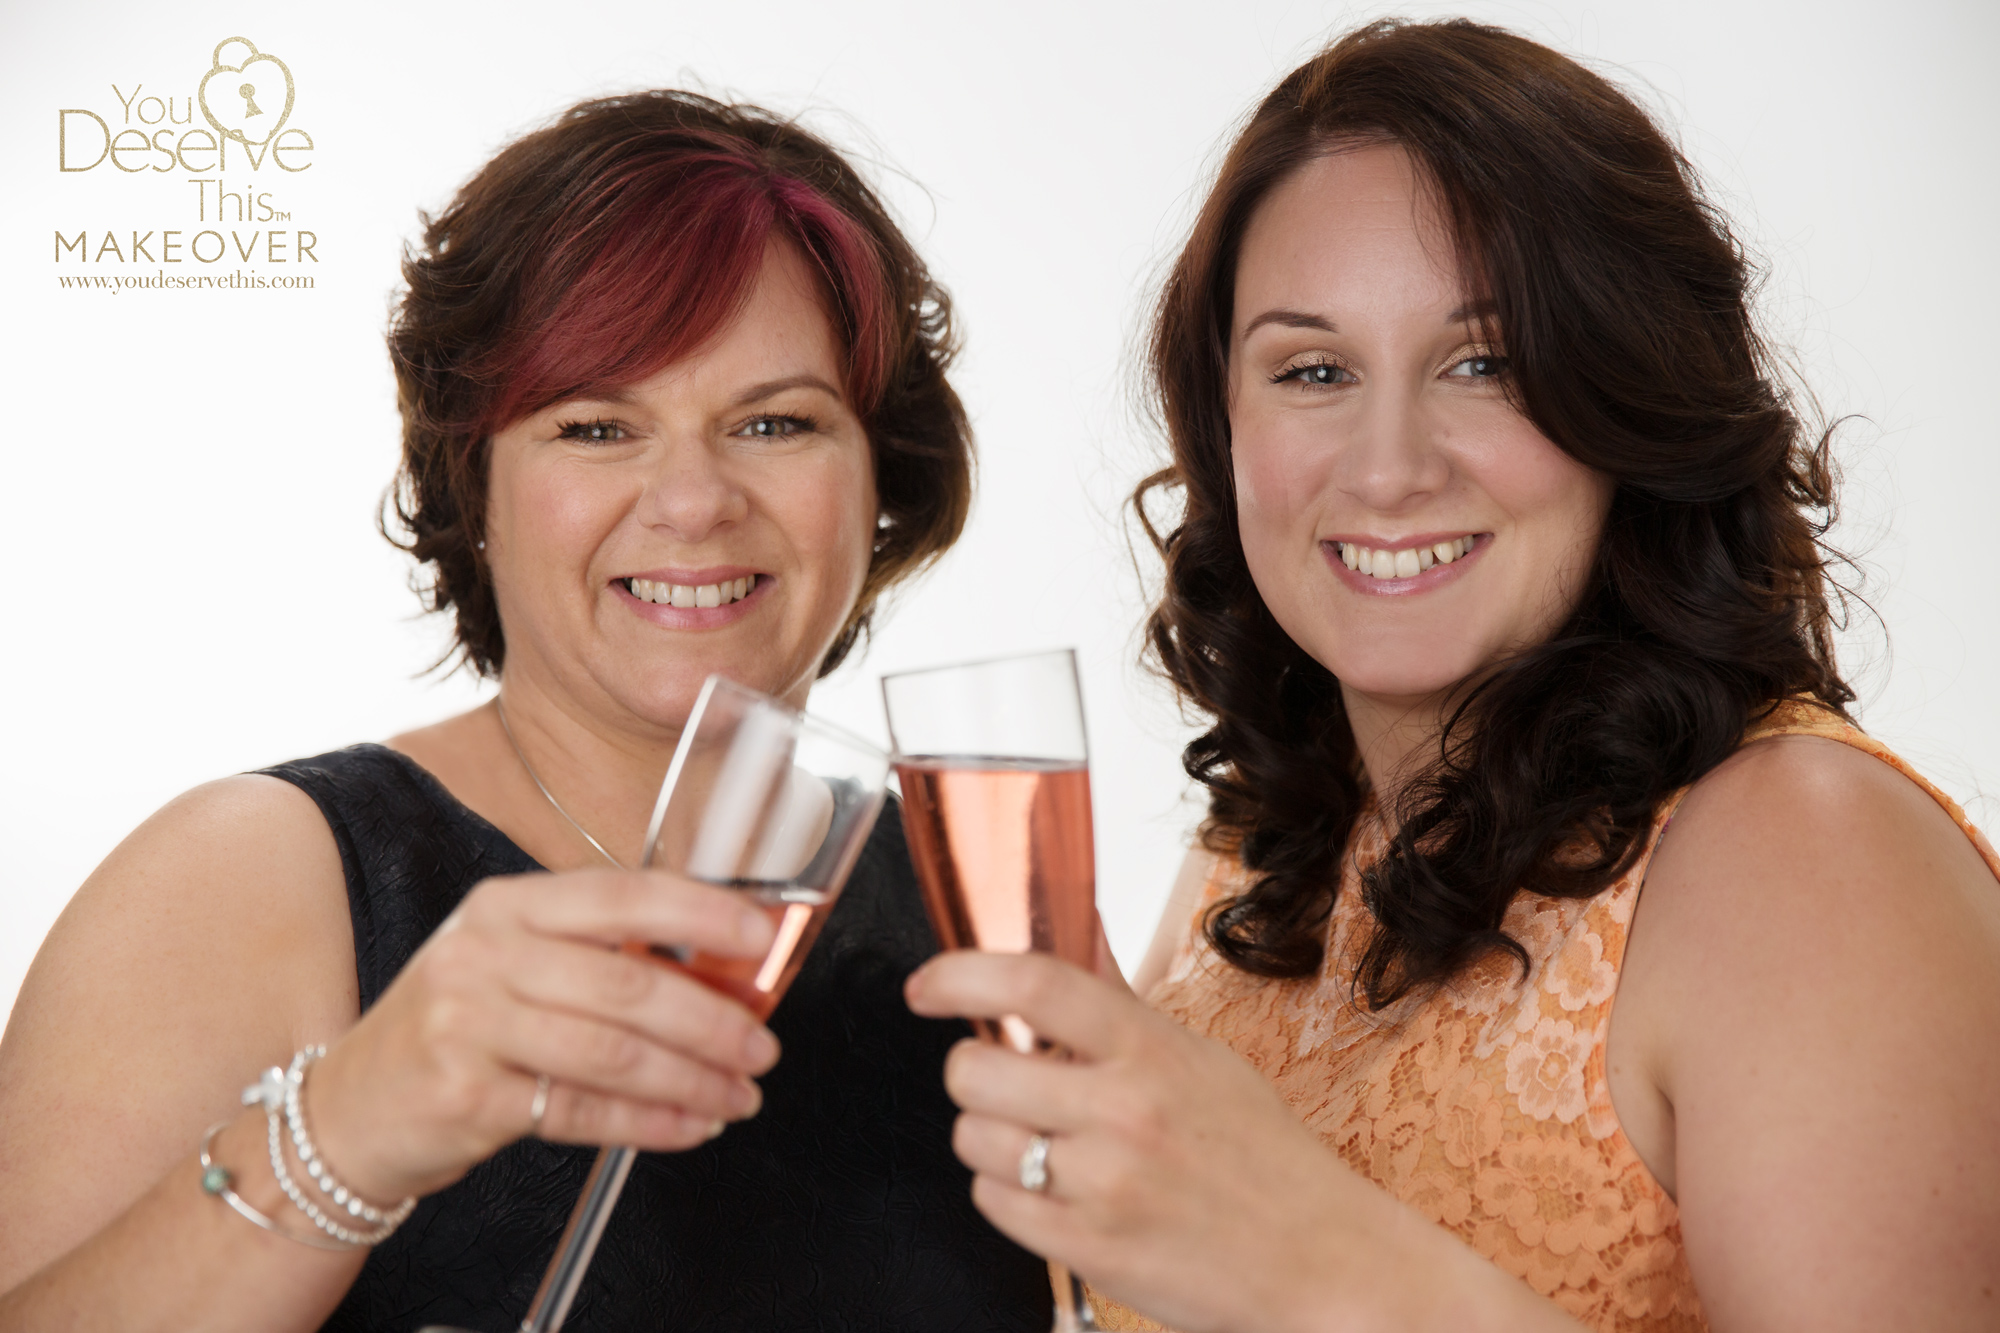 Mum and Daughter Photoshoot - Gift Vouchers available to purchase at  youdeservethis.com